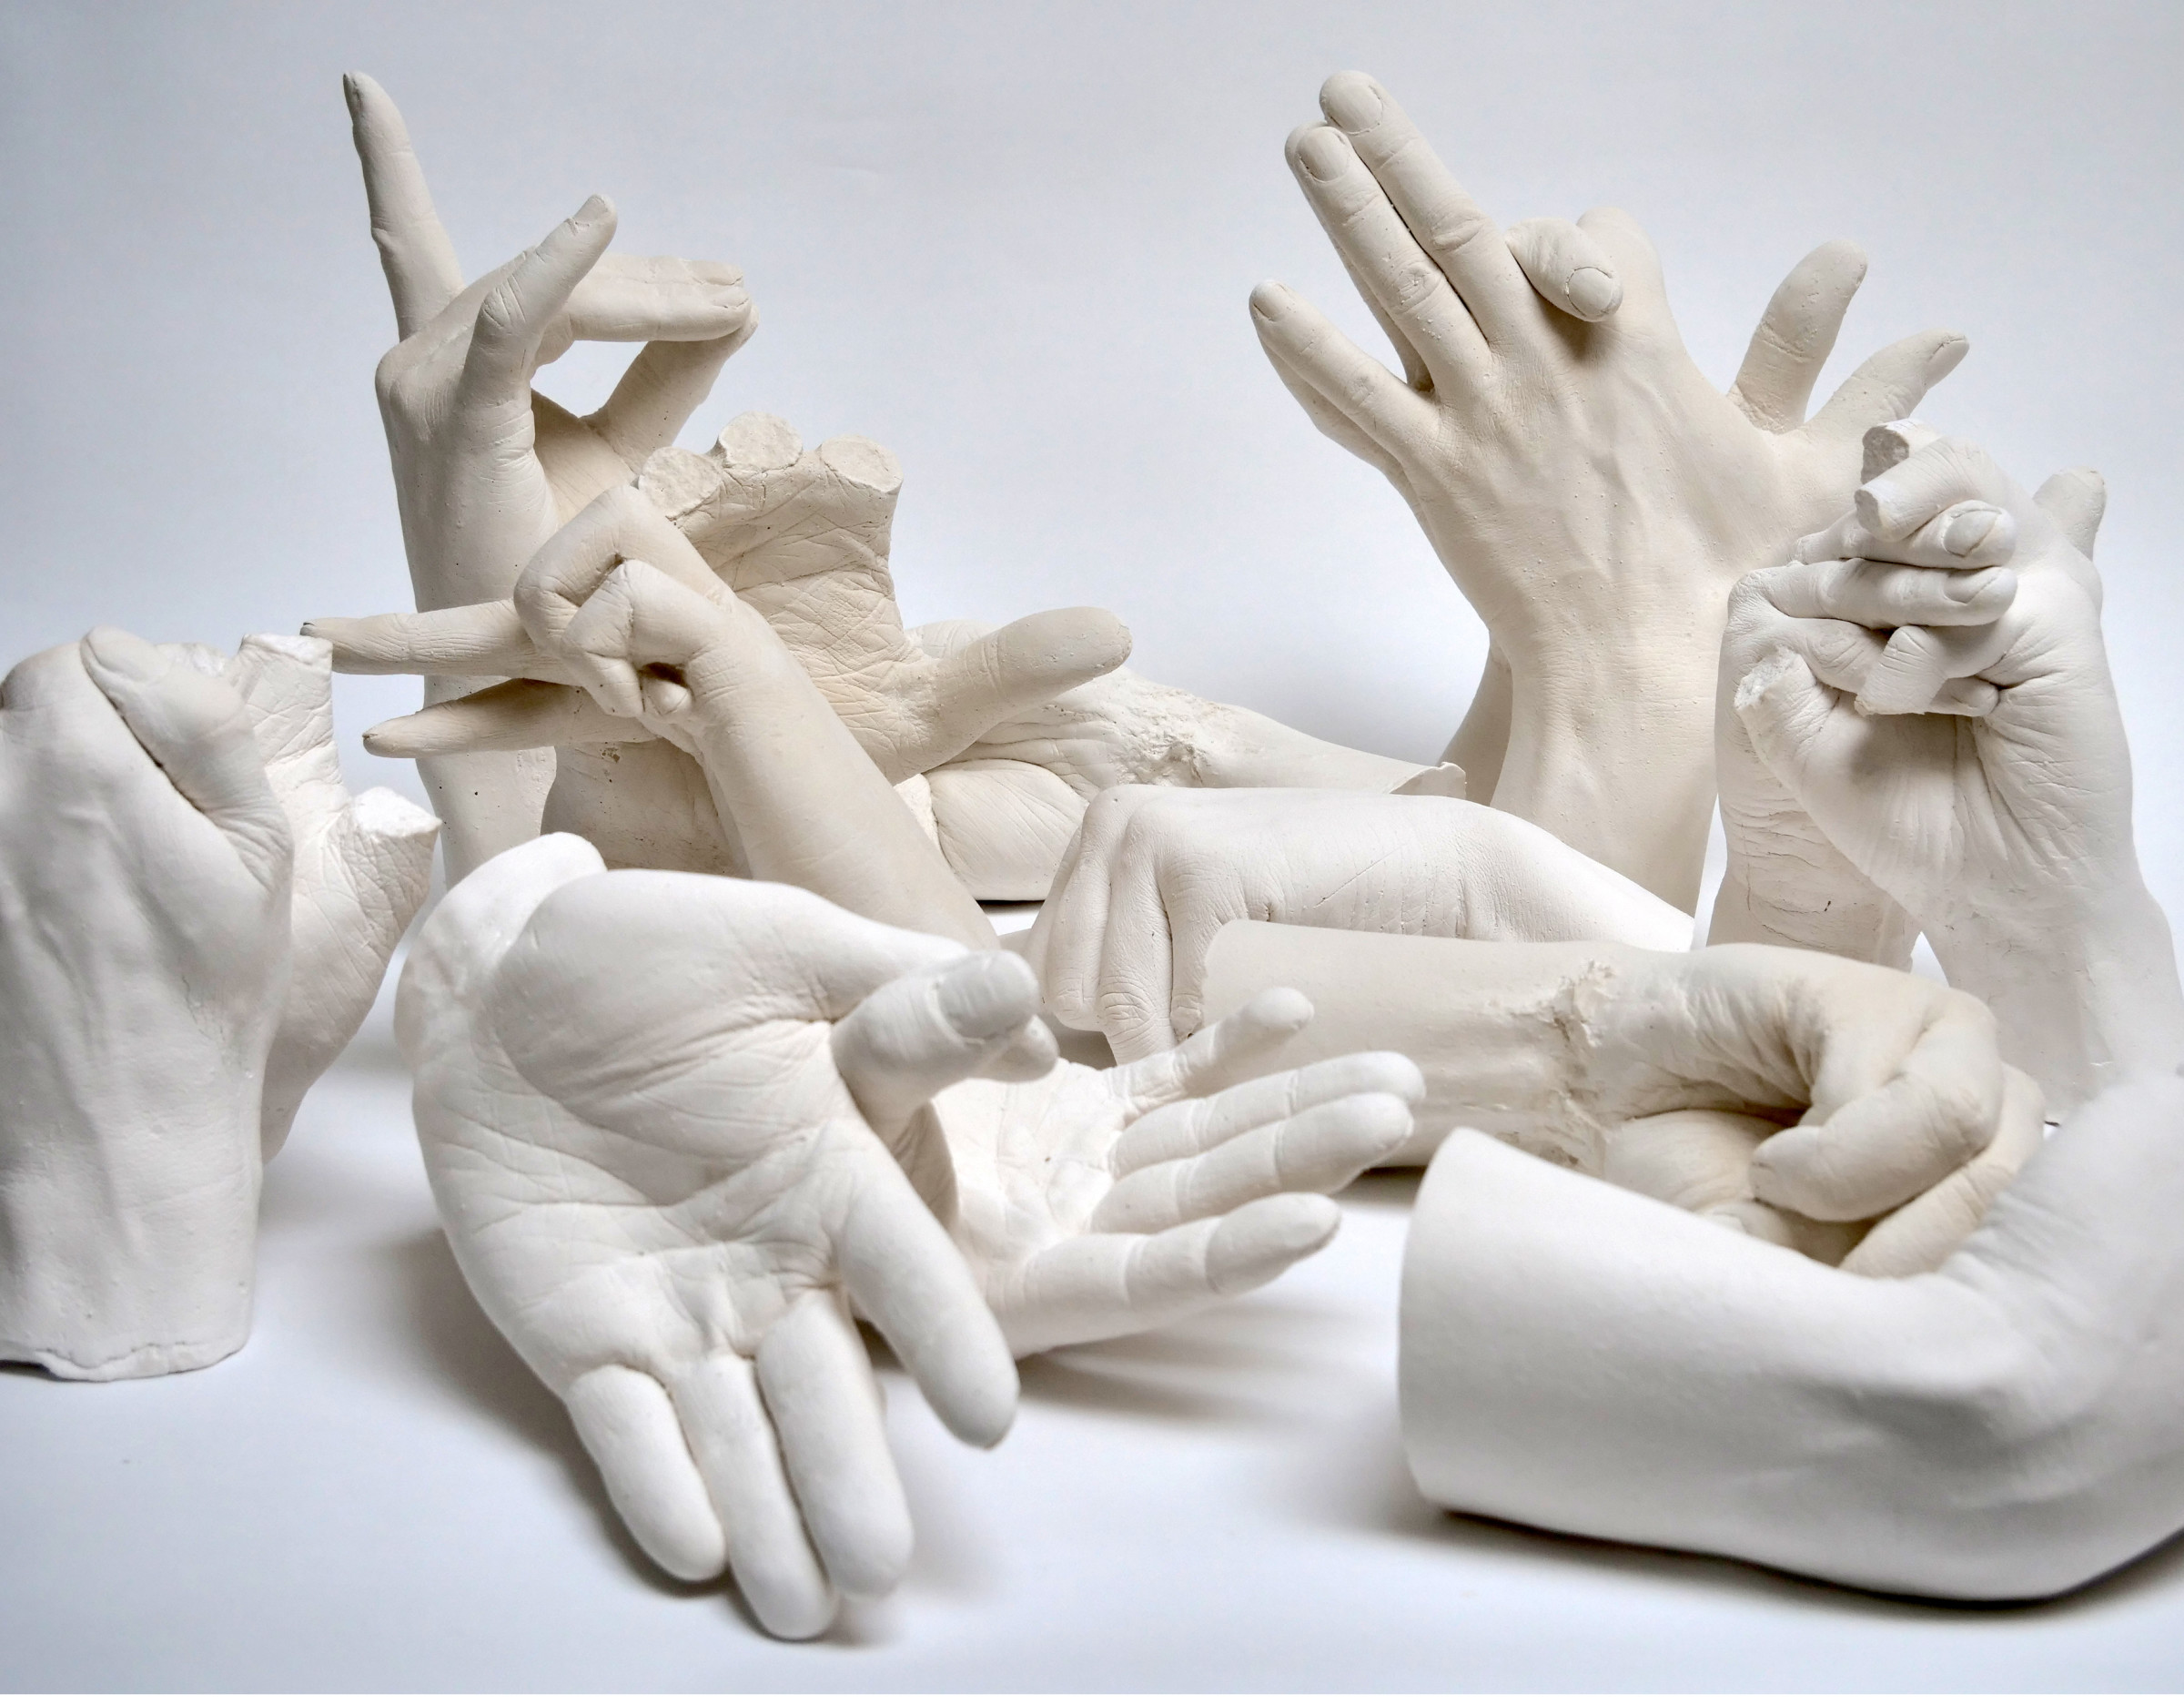 <span class=&#34;link fancybox-details-link&#34;><a href=&#34;/exhibitions/156/works/artworks10314/&#34;>View Detail Page</a></span><div class=&#34;medium&#34;>Plaster of Paris, cast from the artist's hands whilst performing the extinct animal's shadow<br /> </div> <div class=&#34;dimensions&#34;>110 x 110 x 60 cm (including plinth)<br /> 43 1/4 x 43 1/4 x 23 5/8 in</div>